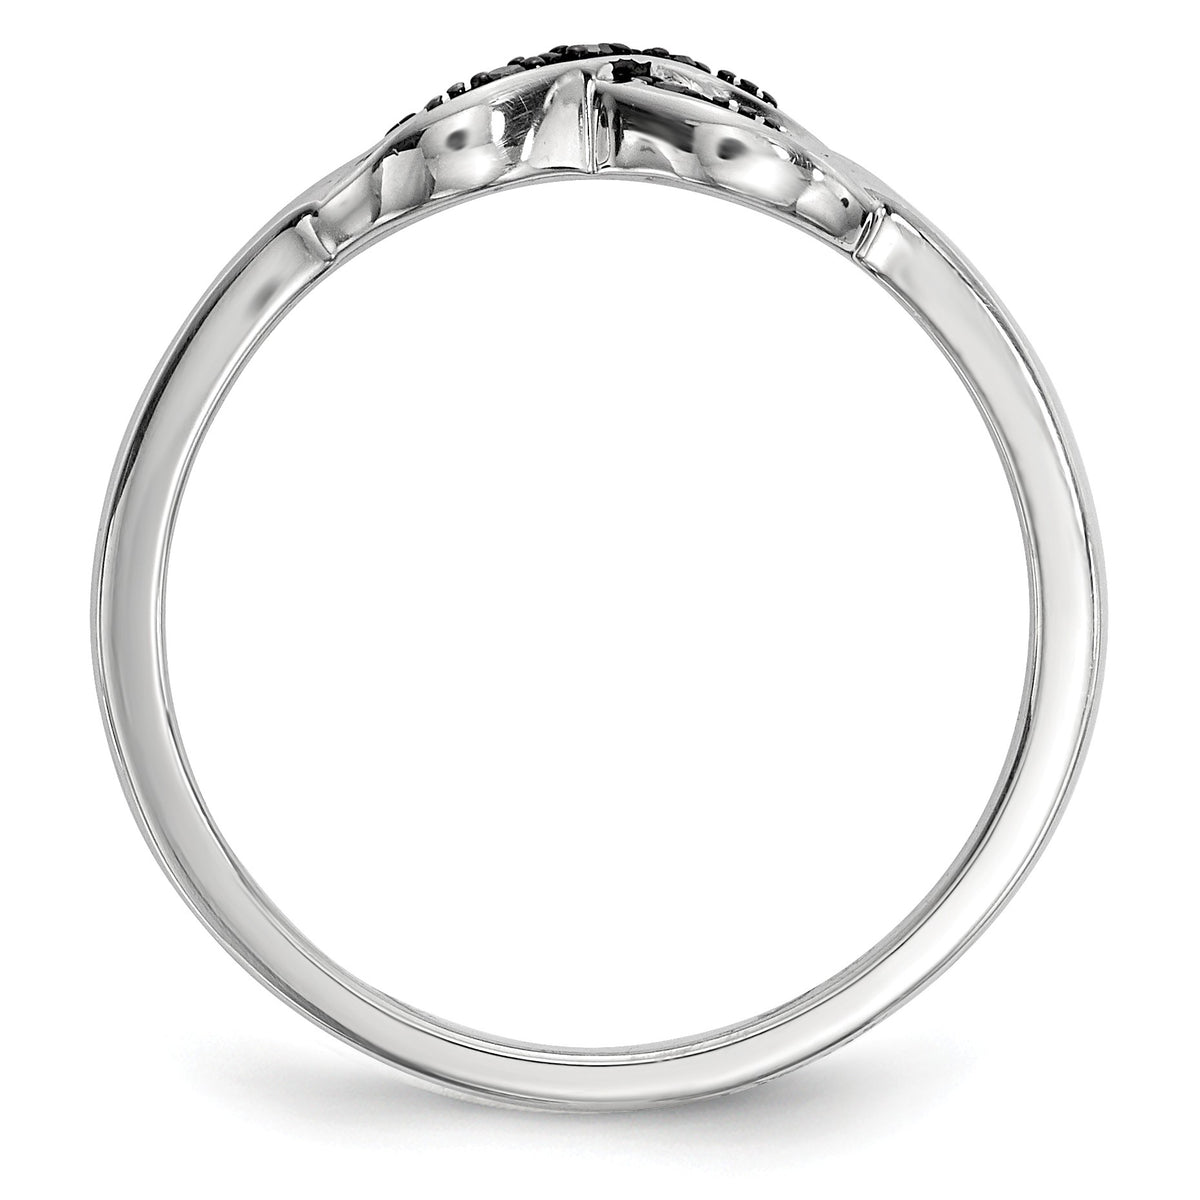 Alternate view of the 1/20 Ctw Black & White Diamond X Ring in Sterling Silver by The Black Bow Jewelry Co.